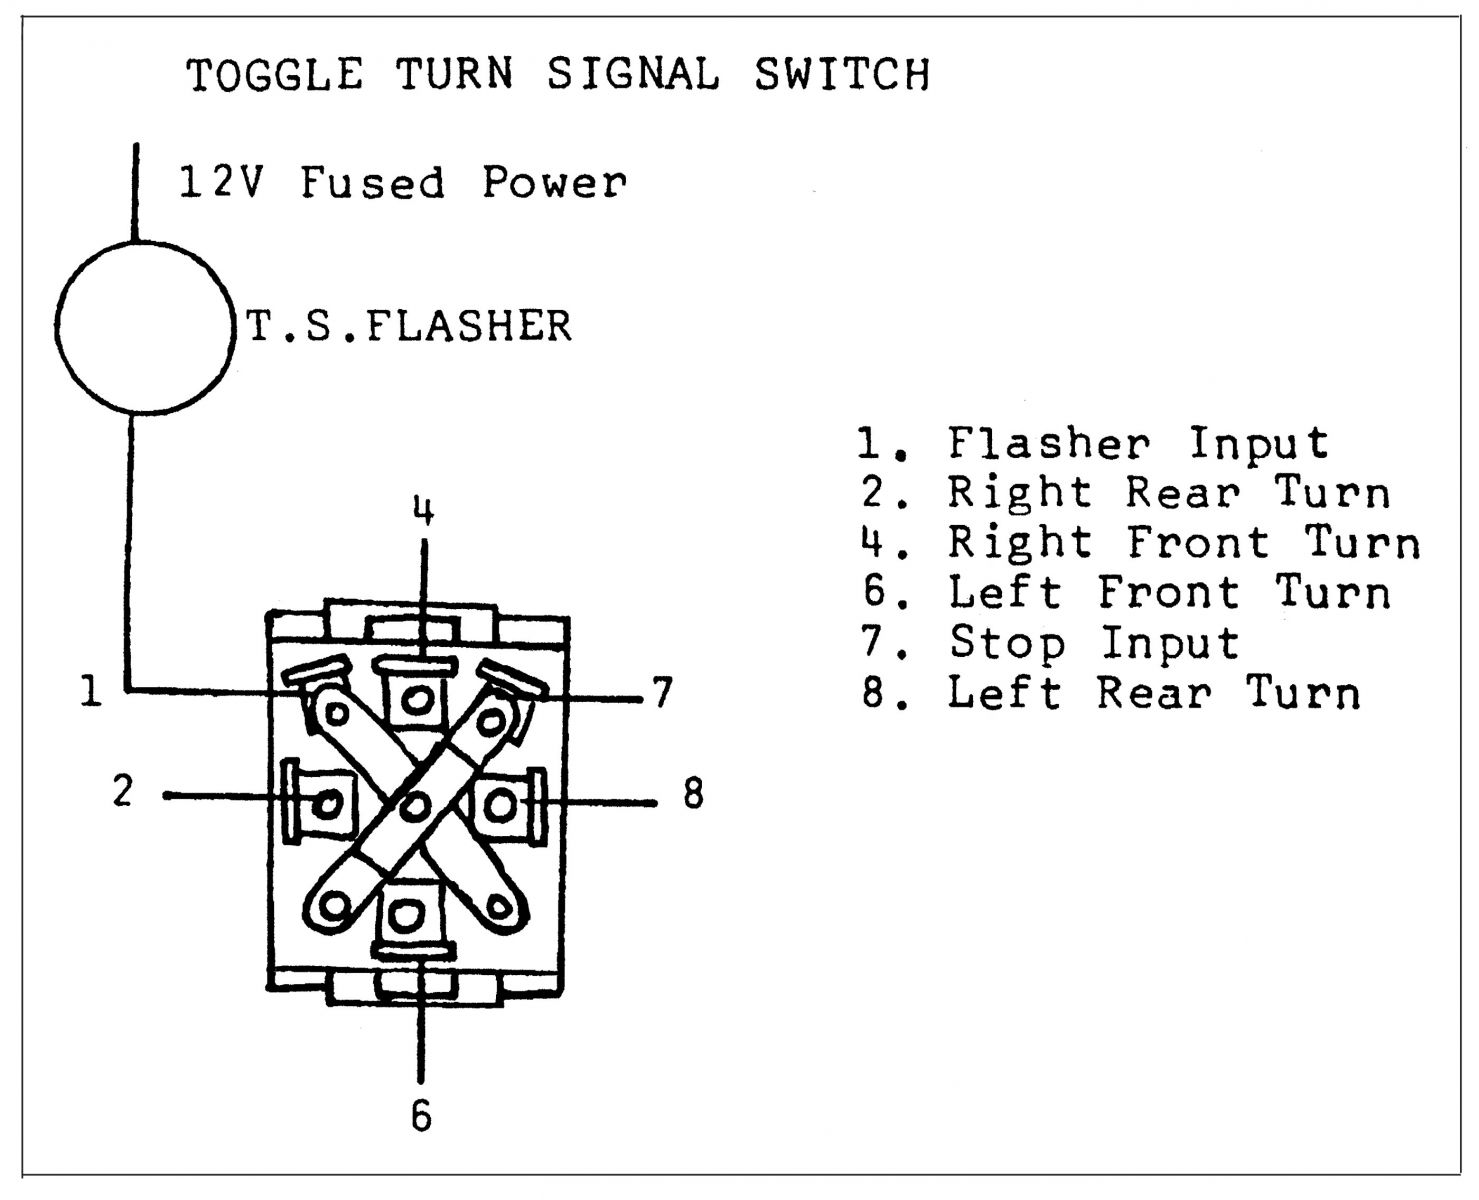 ke turn signal wiring diagram 6 volt turn signal wiring diagram